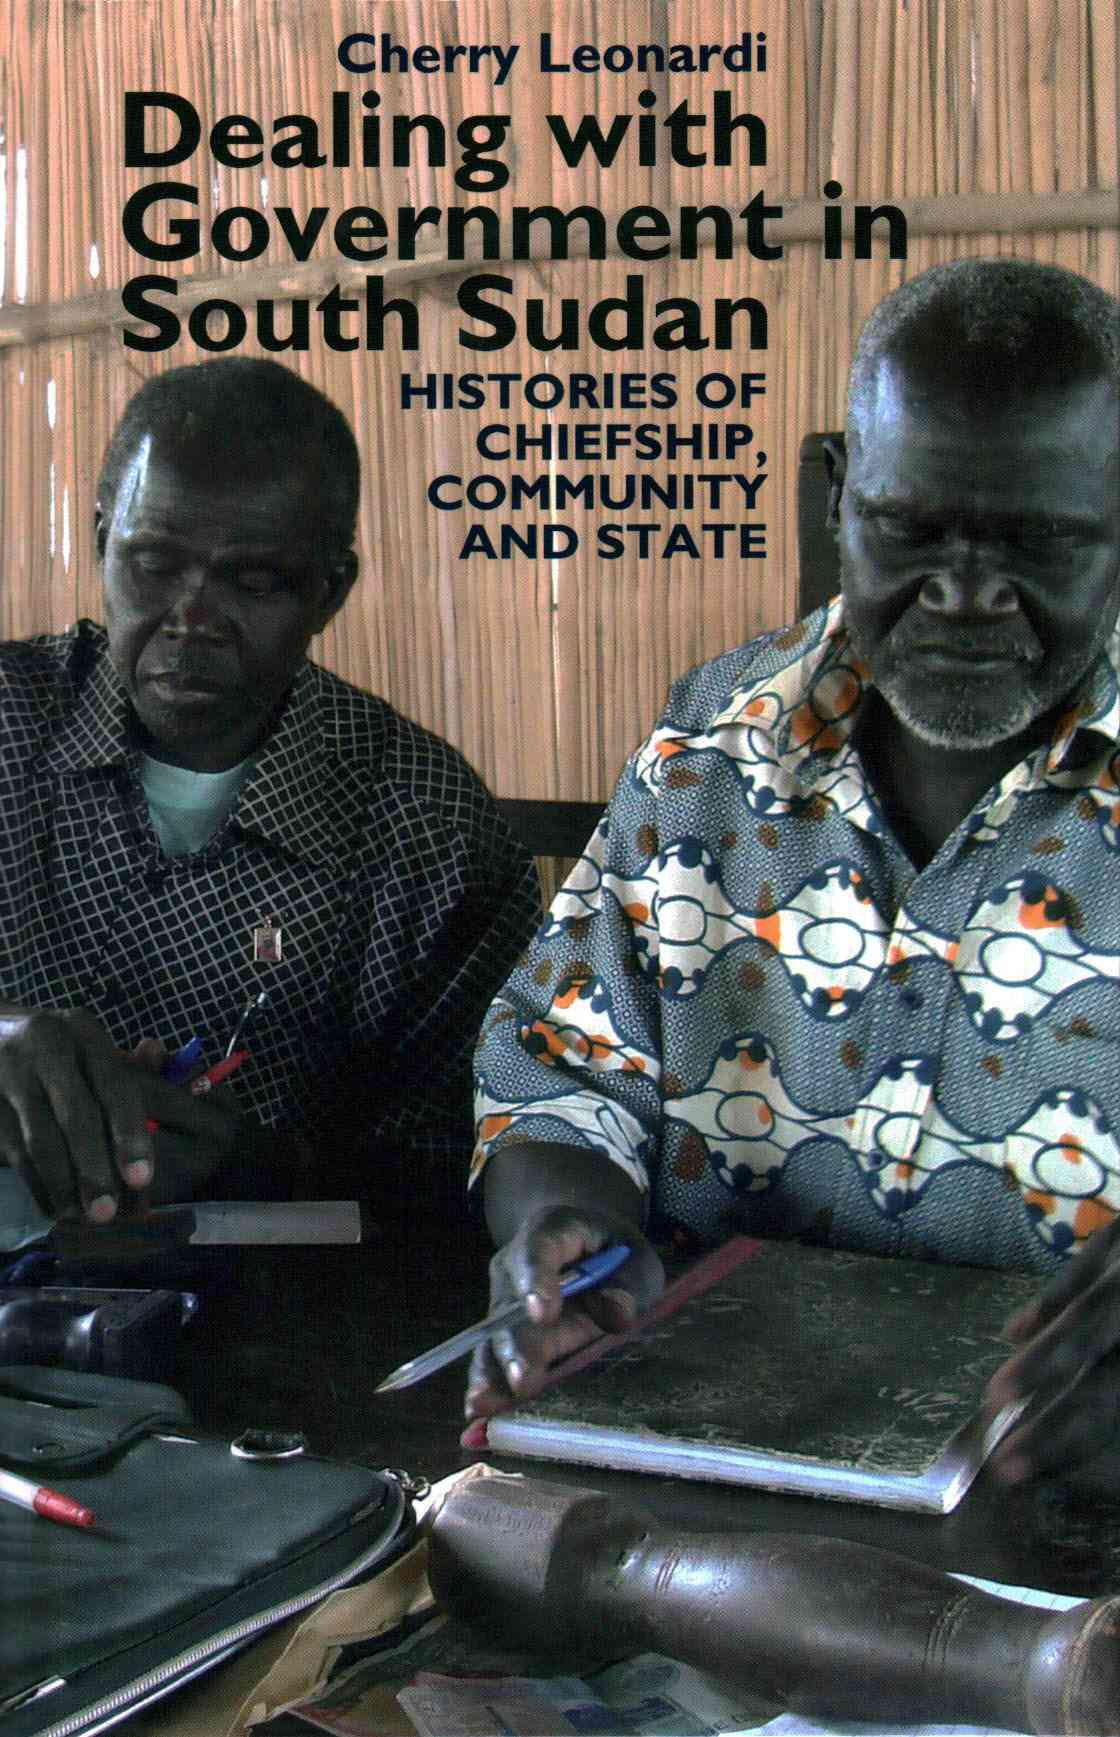 Dealing With Government in South Sudan: Histories of chiefship, community and state (Hardcover)